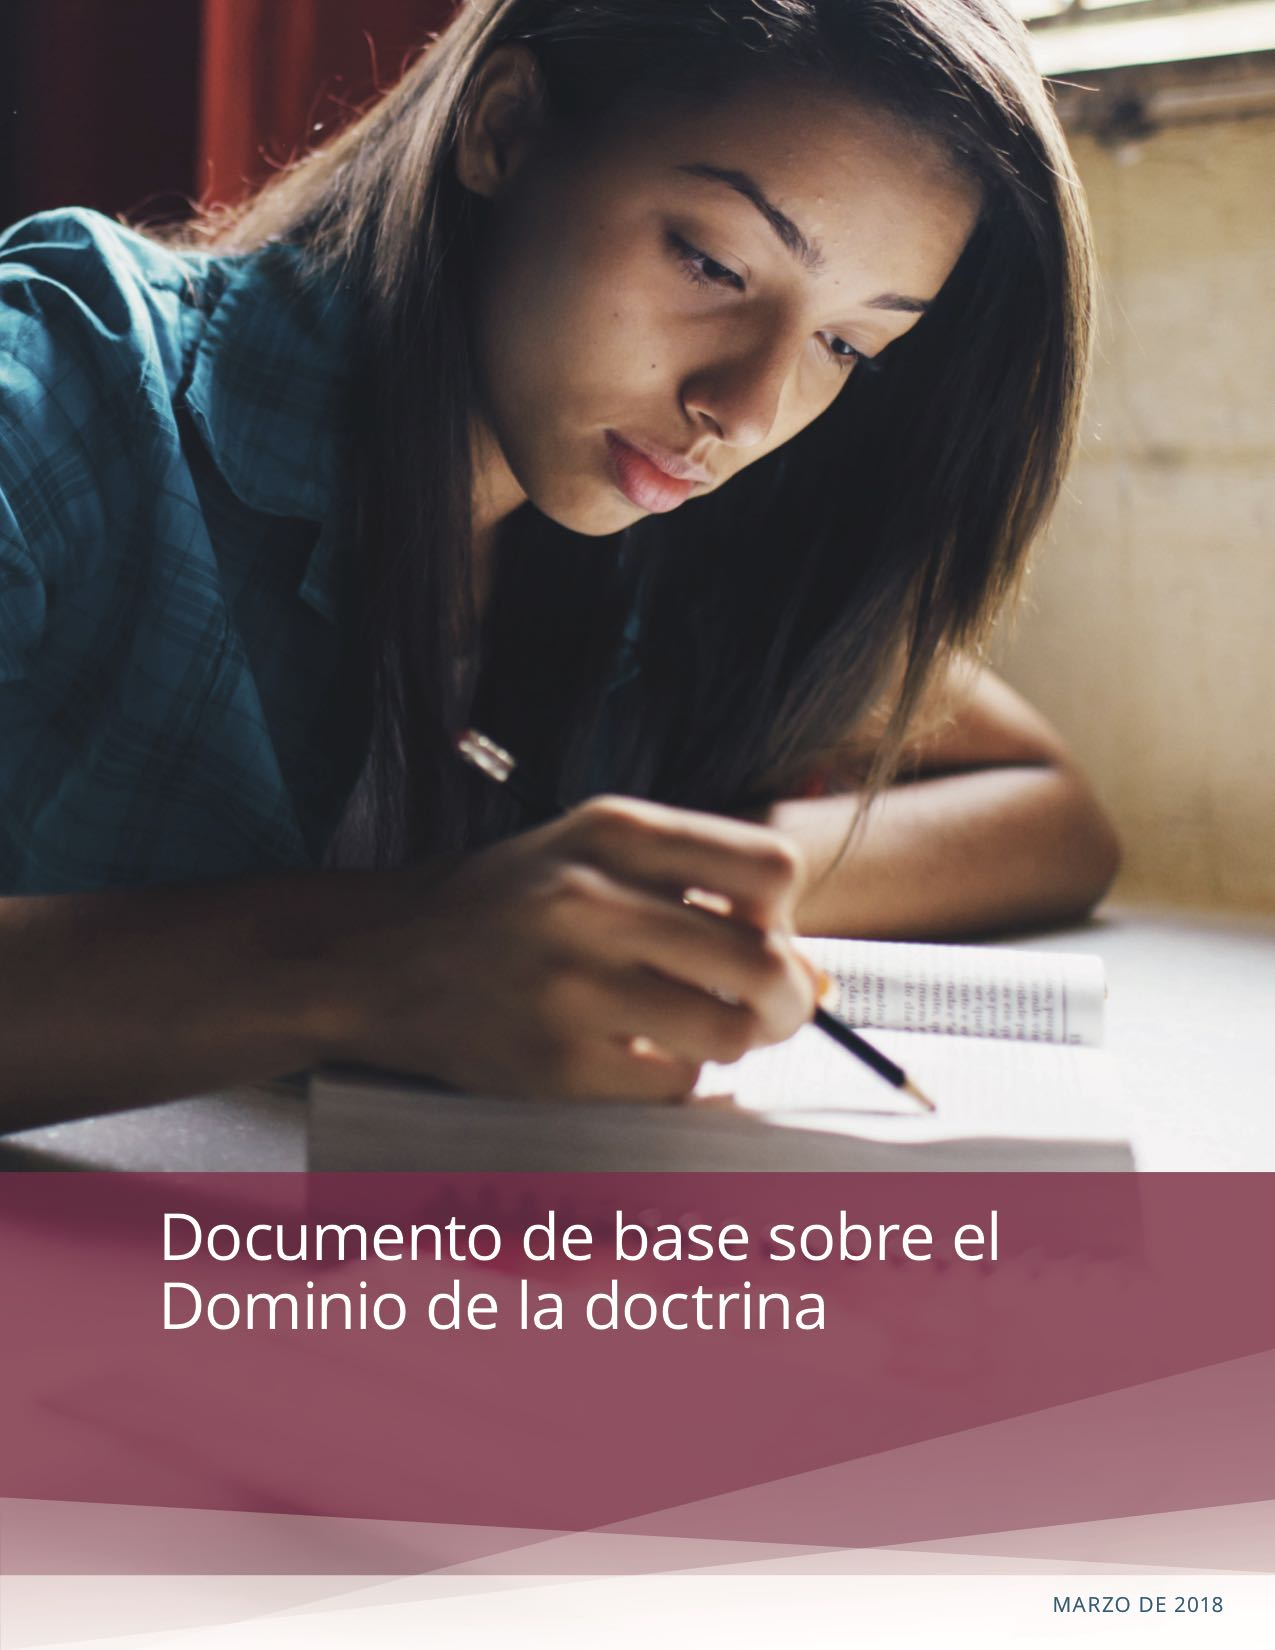 Cubierta del Documento de base sobre el Dominio de la doctrina